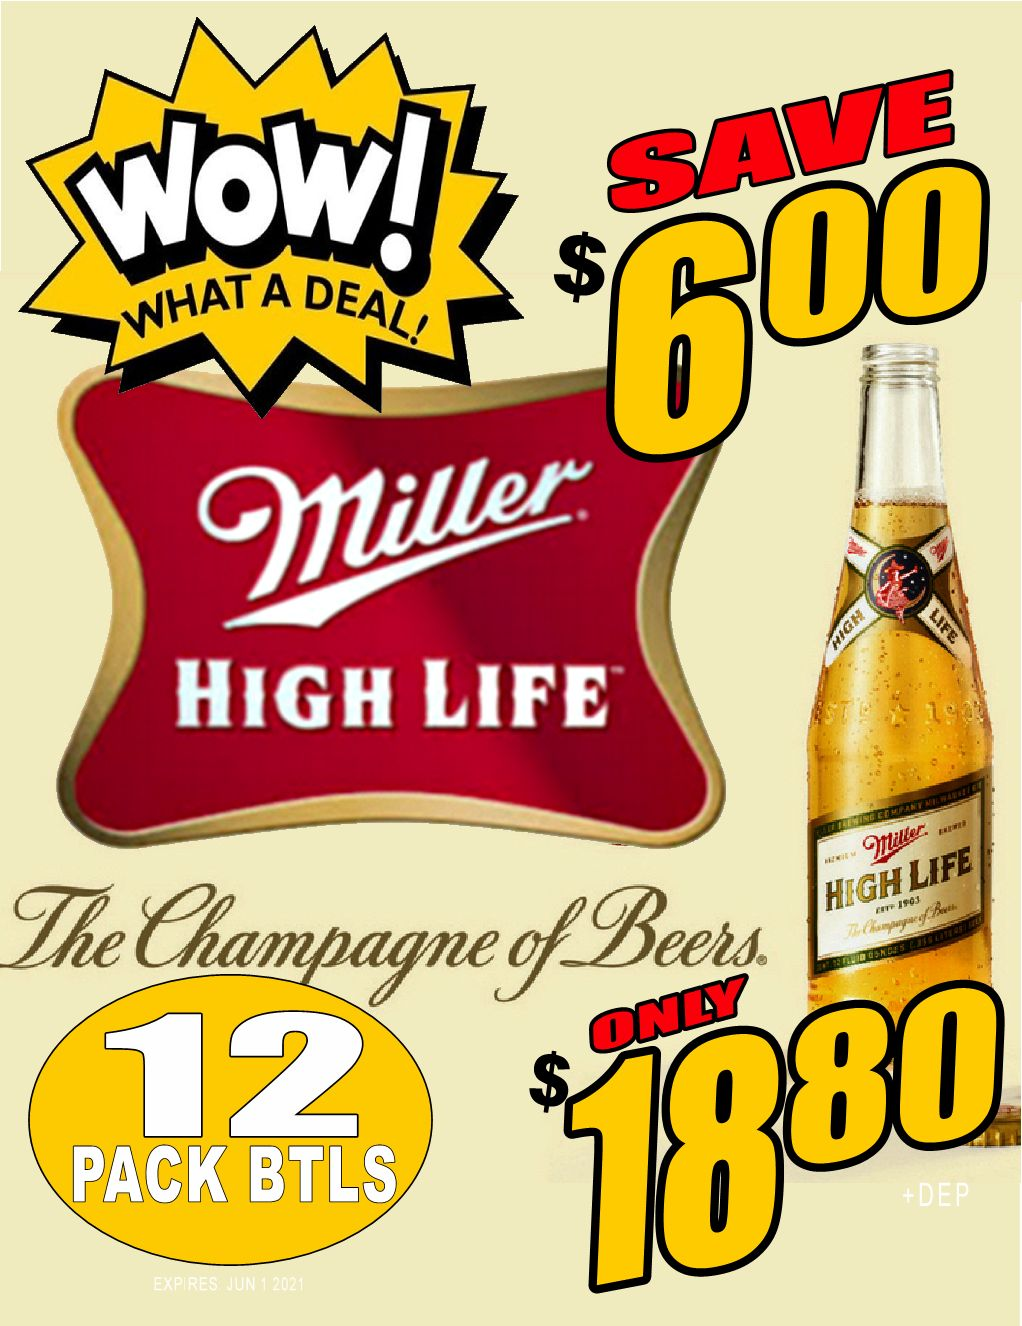 WOW!! Miller High Life - 12PB - Save $6.00!! WOW DEAL!!